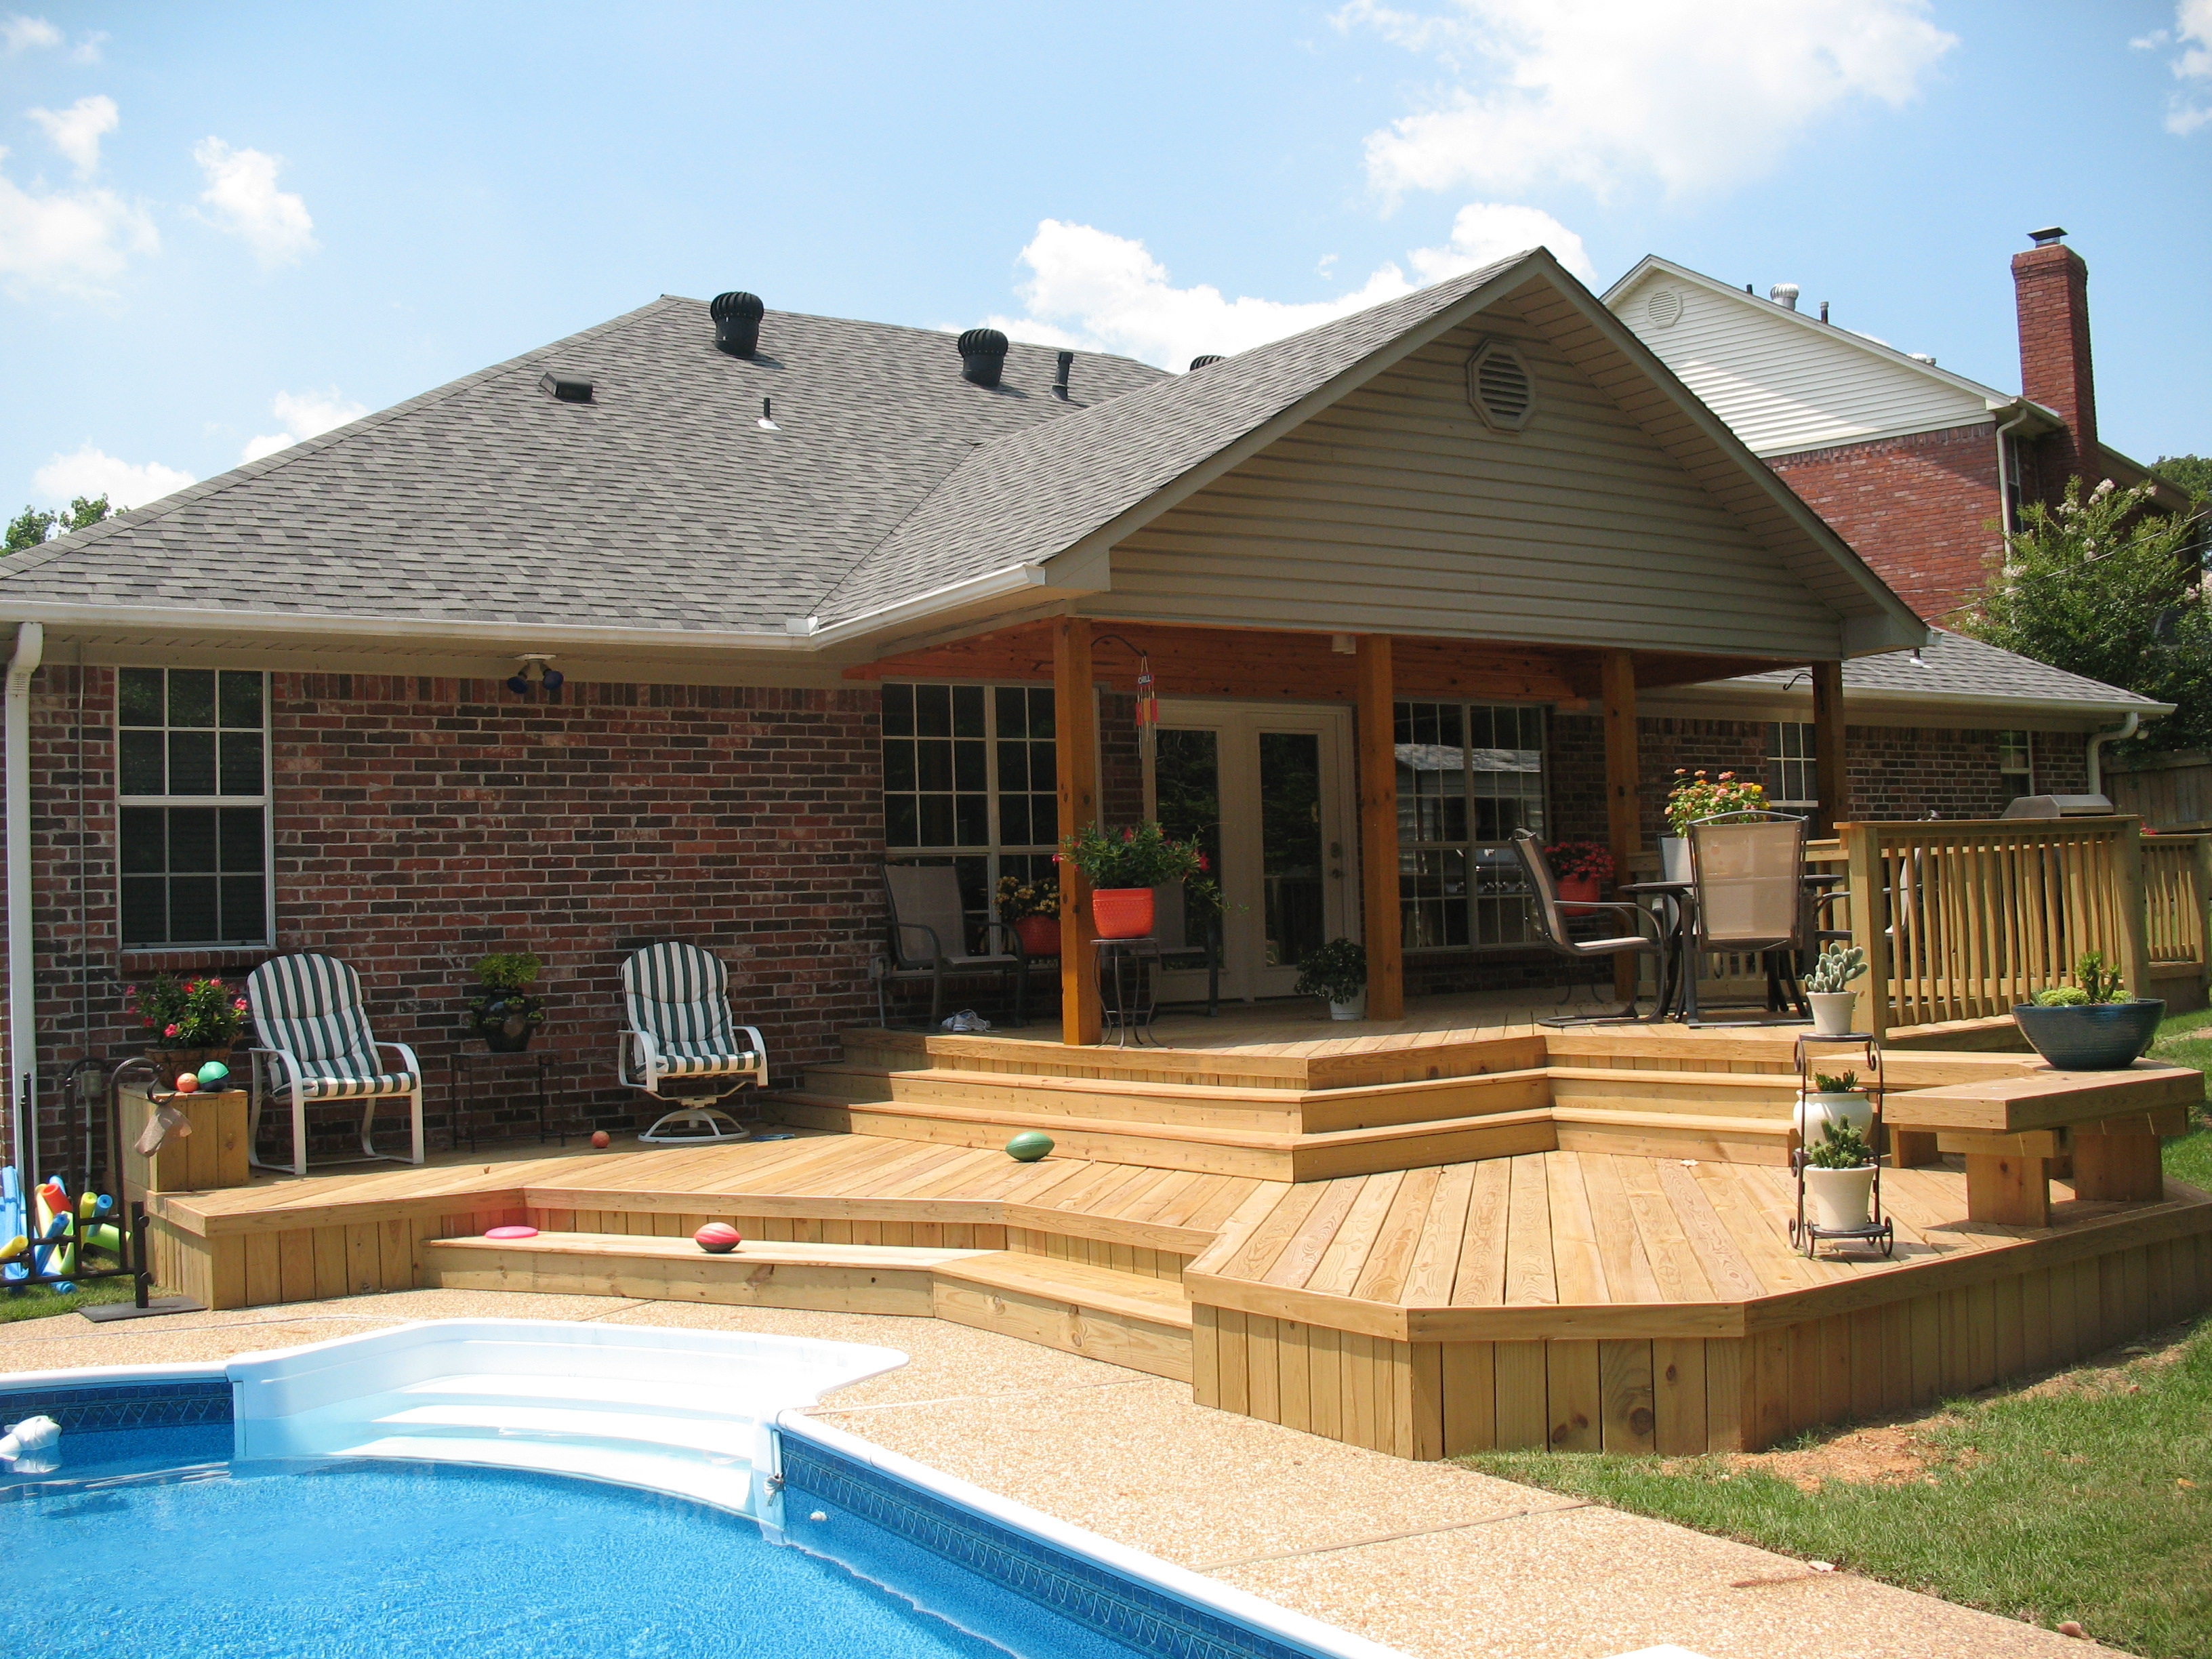 affordable decks St. Louis Mo | St. Louis decks, screened ... on Pool Deck Patio Ideas id=62700